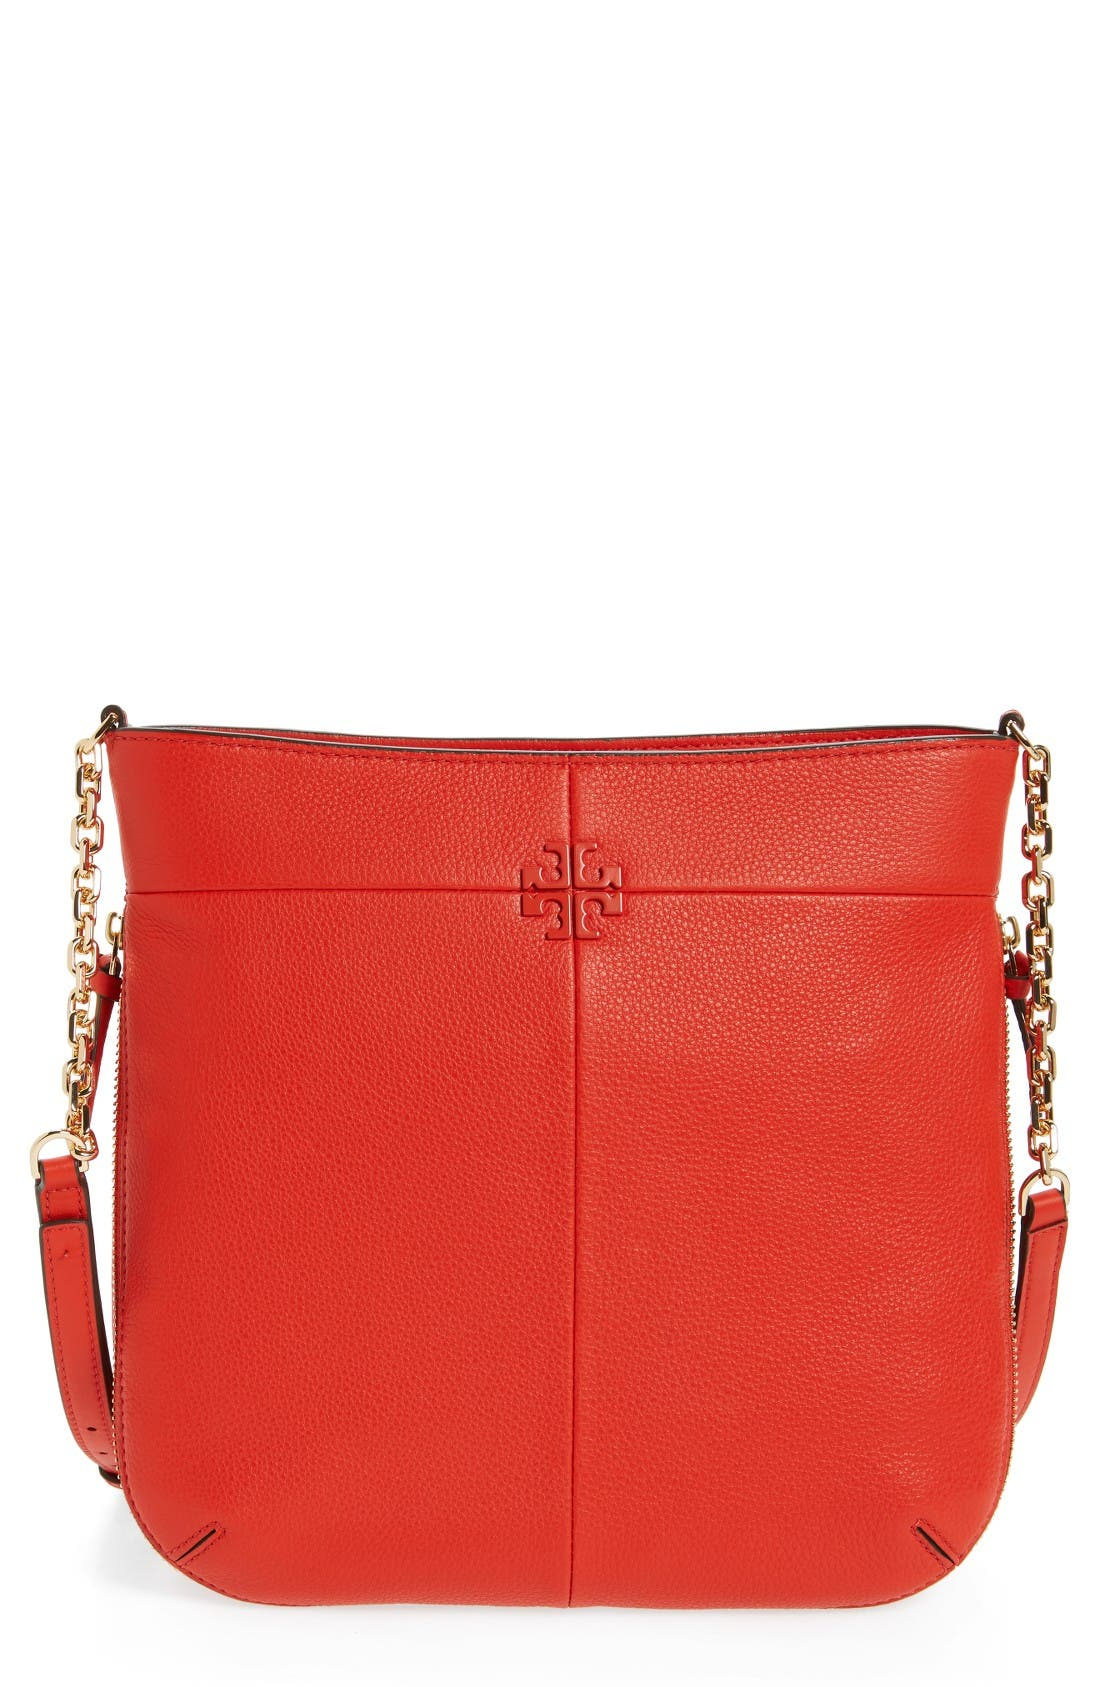 Alternate Image 1 Selected - Tory Burch Ivy Swingpack Leather Hobo